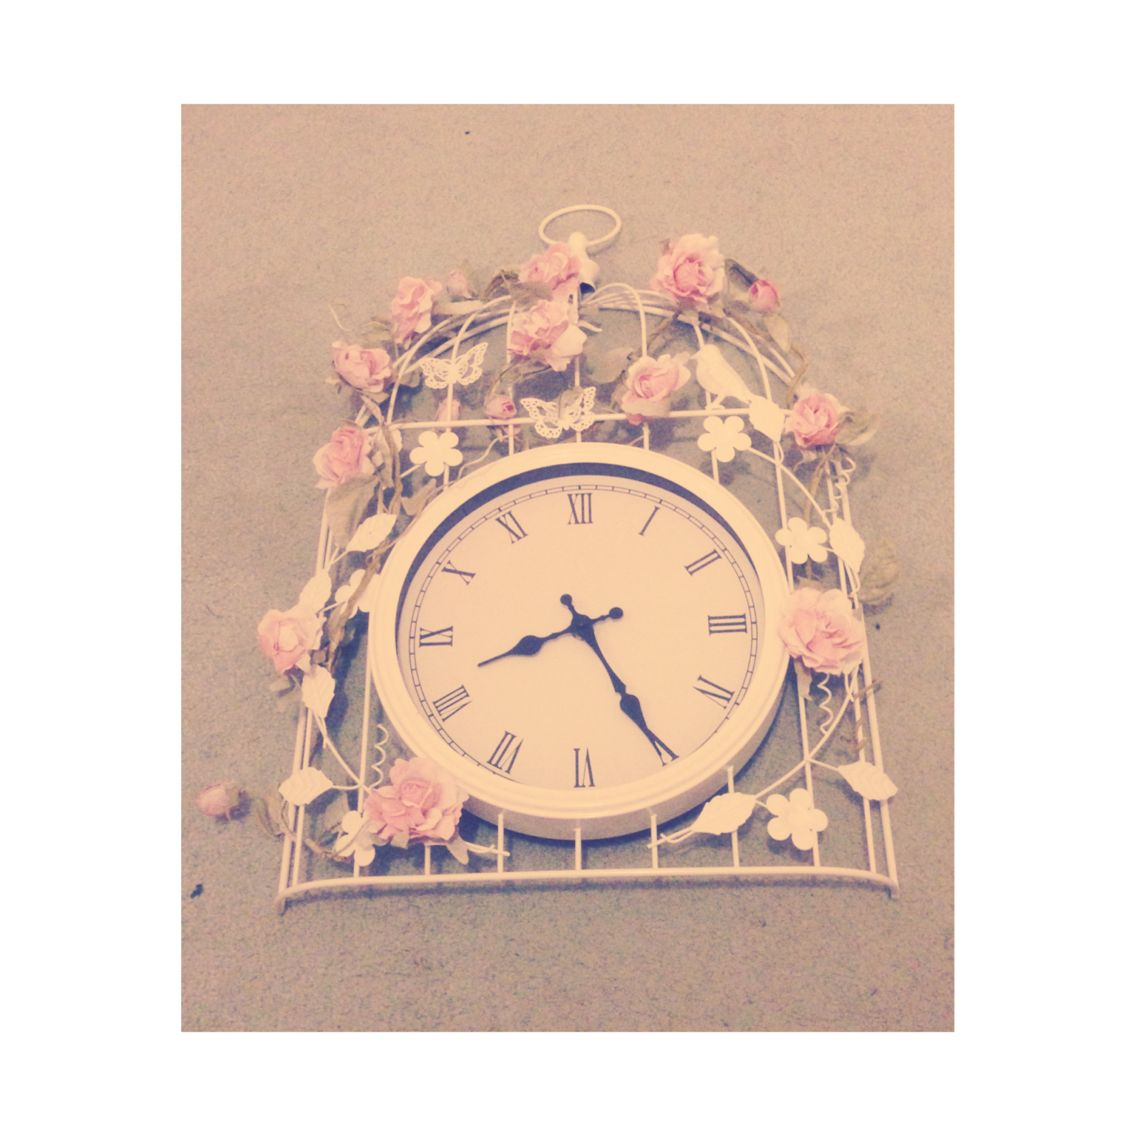 New clock with a rose veil!